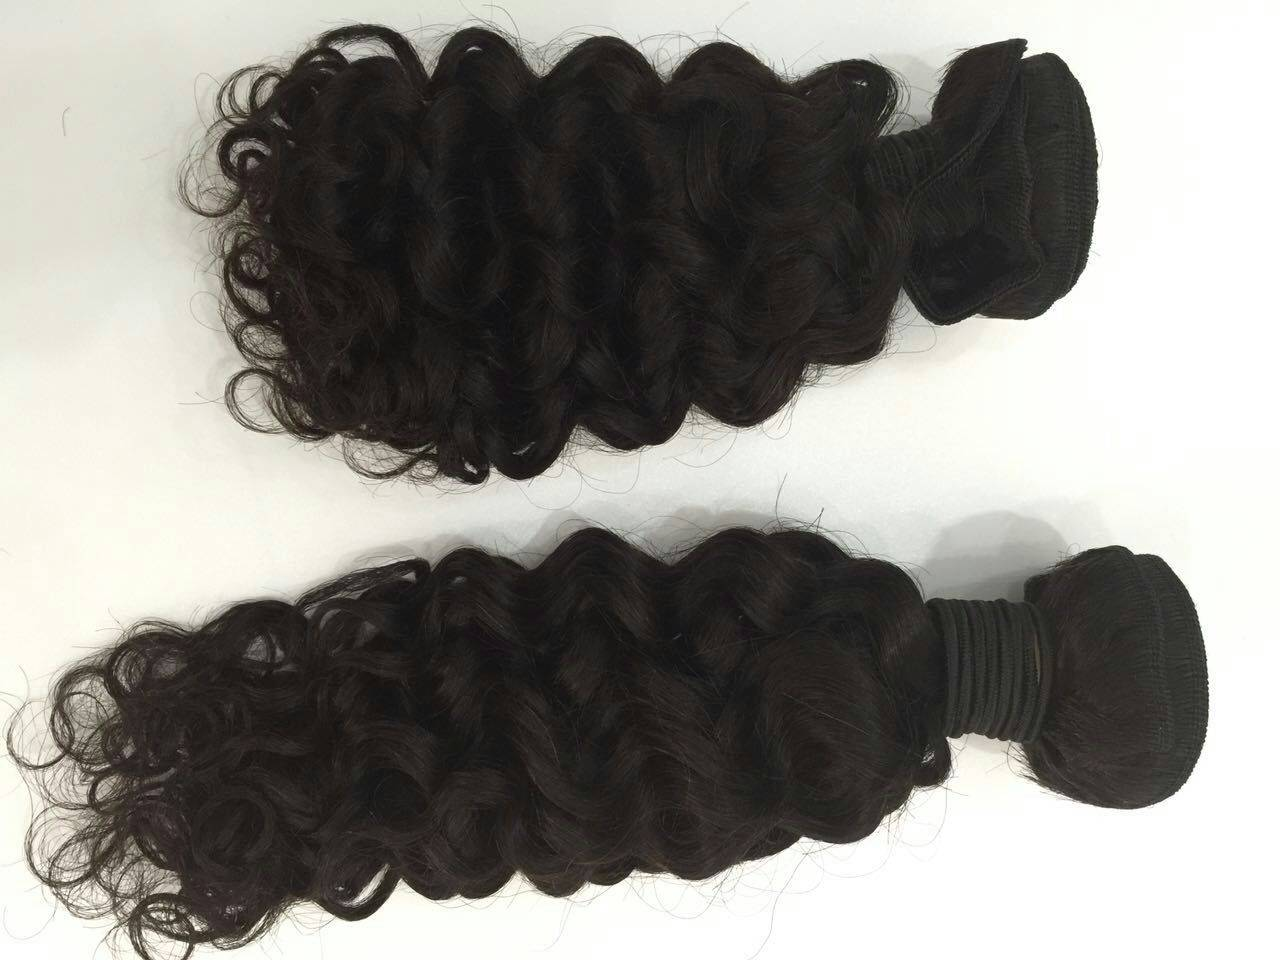 Italian wave virgin remy peruvian hair extension